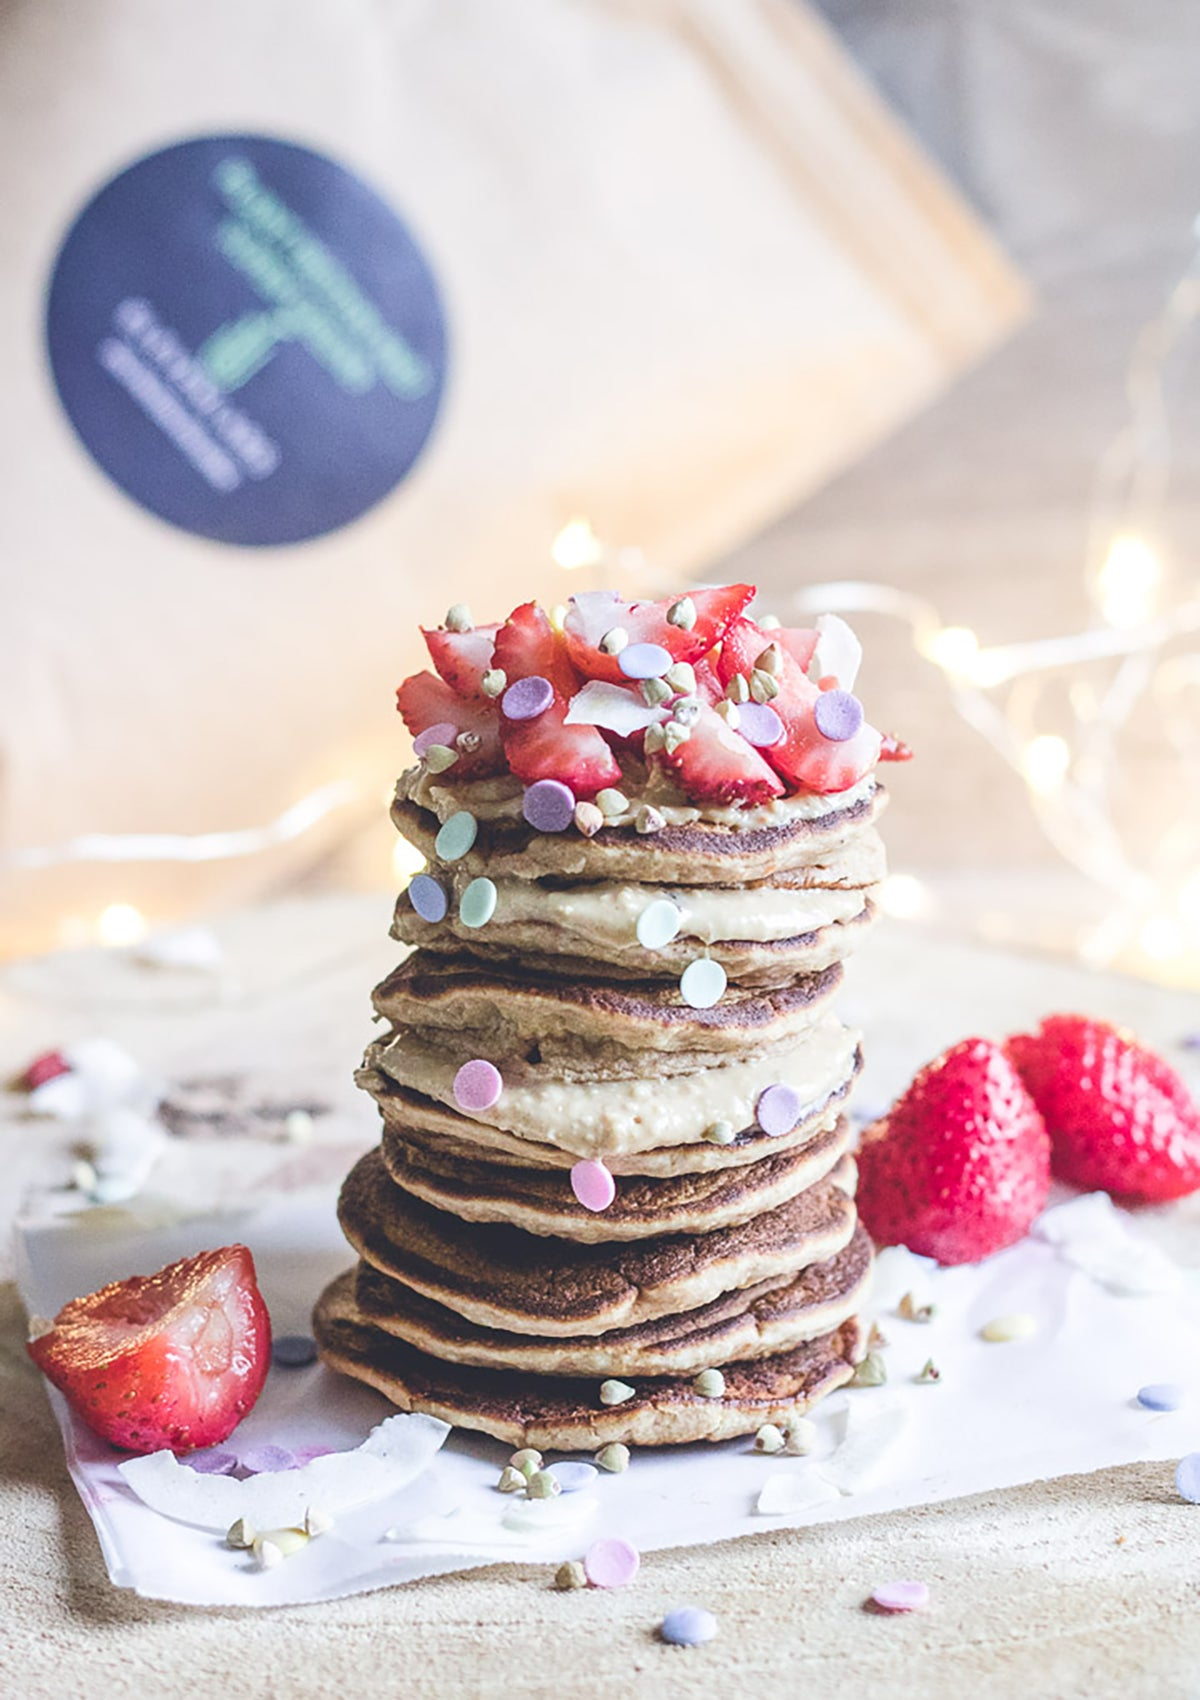 elevenlabs nourishing plant protein pancakes stacked with cashew cream and strawberries